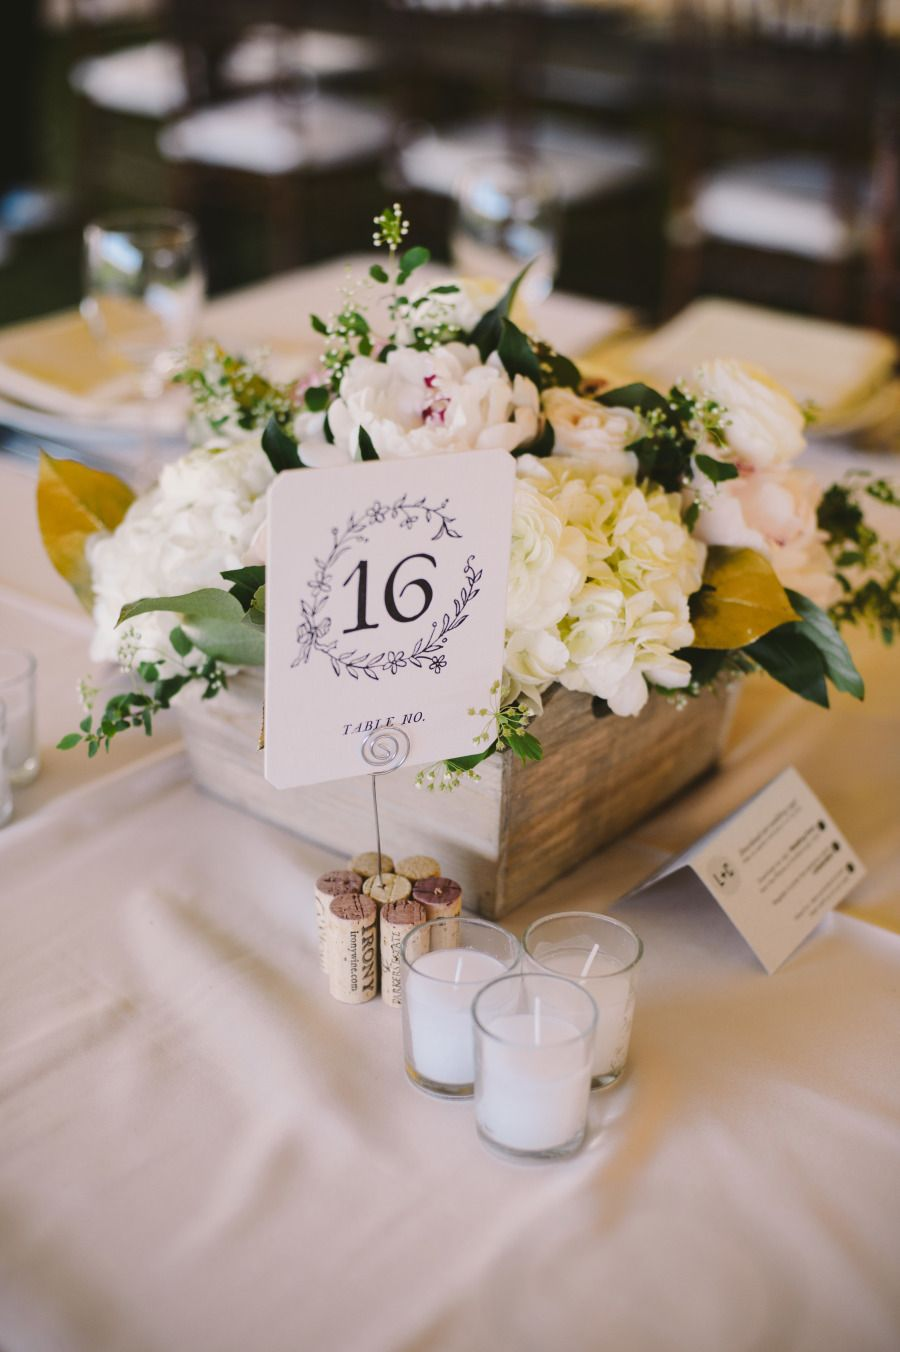 36 Creative Ways To Personalize Your Wedding Rustic Table NumbersWedding